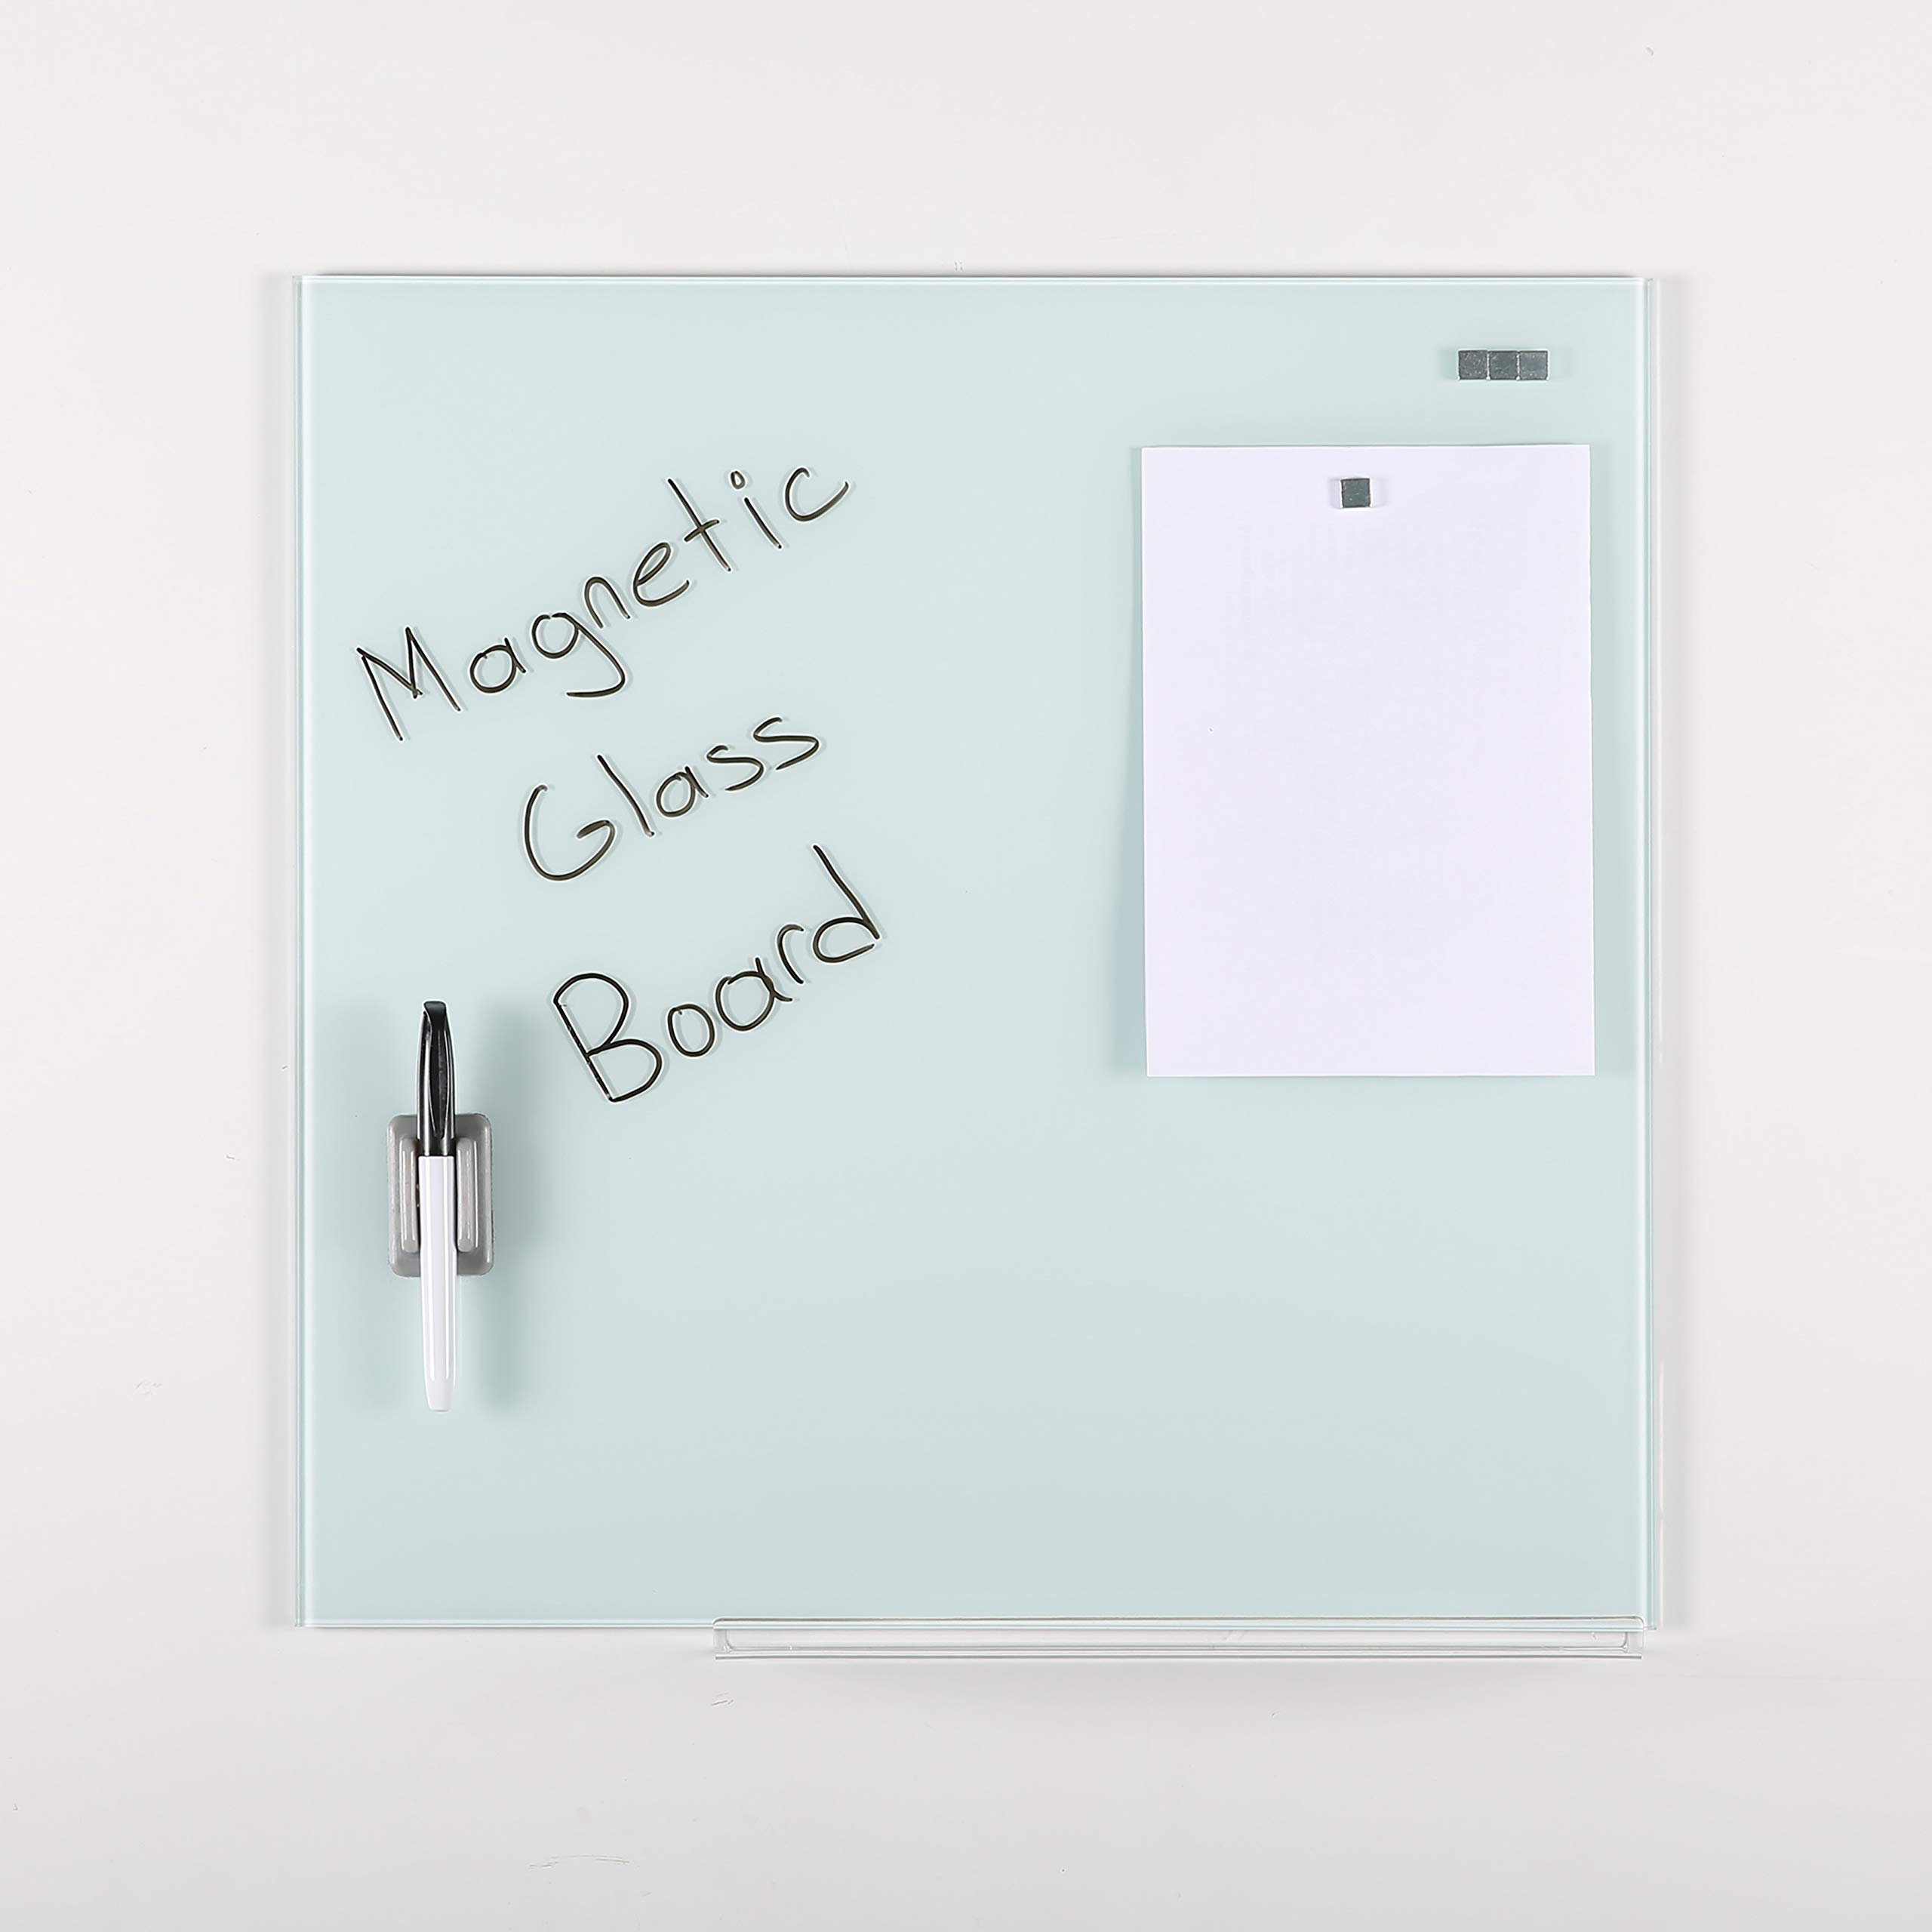 M&T Displays Wall Mounted Magnetic Tempered Glass Dry Erase Board Set, White, 17.72x17.72, with A Pen & 4 Magnetic Pins by M&T Displays